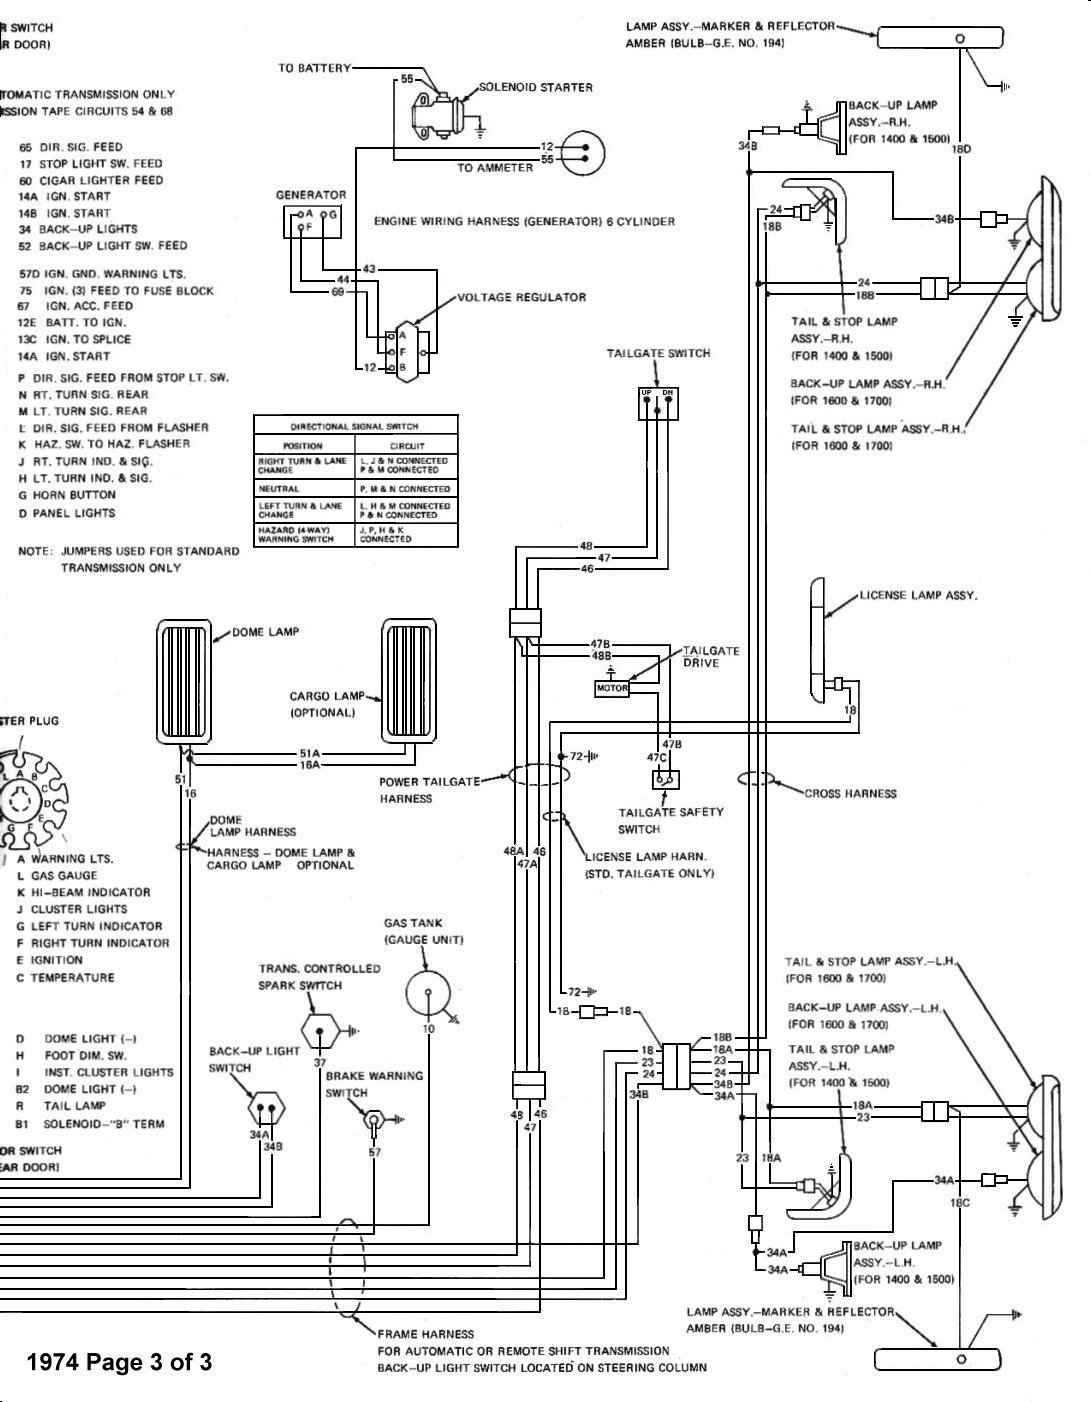 wiring diagram analog holley pro jection auto electrical wiring rh 6weeks co uk holley pro jection 4 wiring diagram